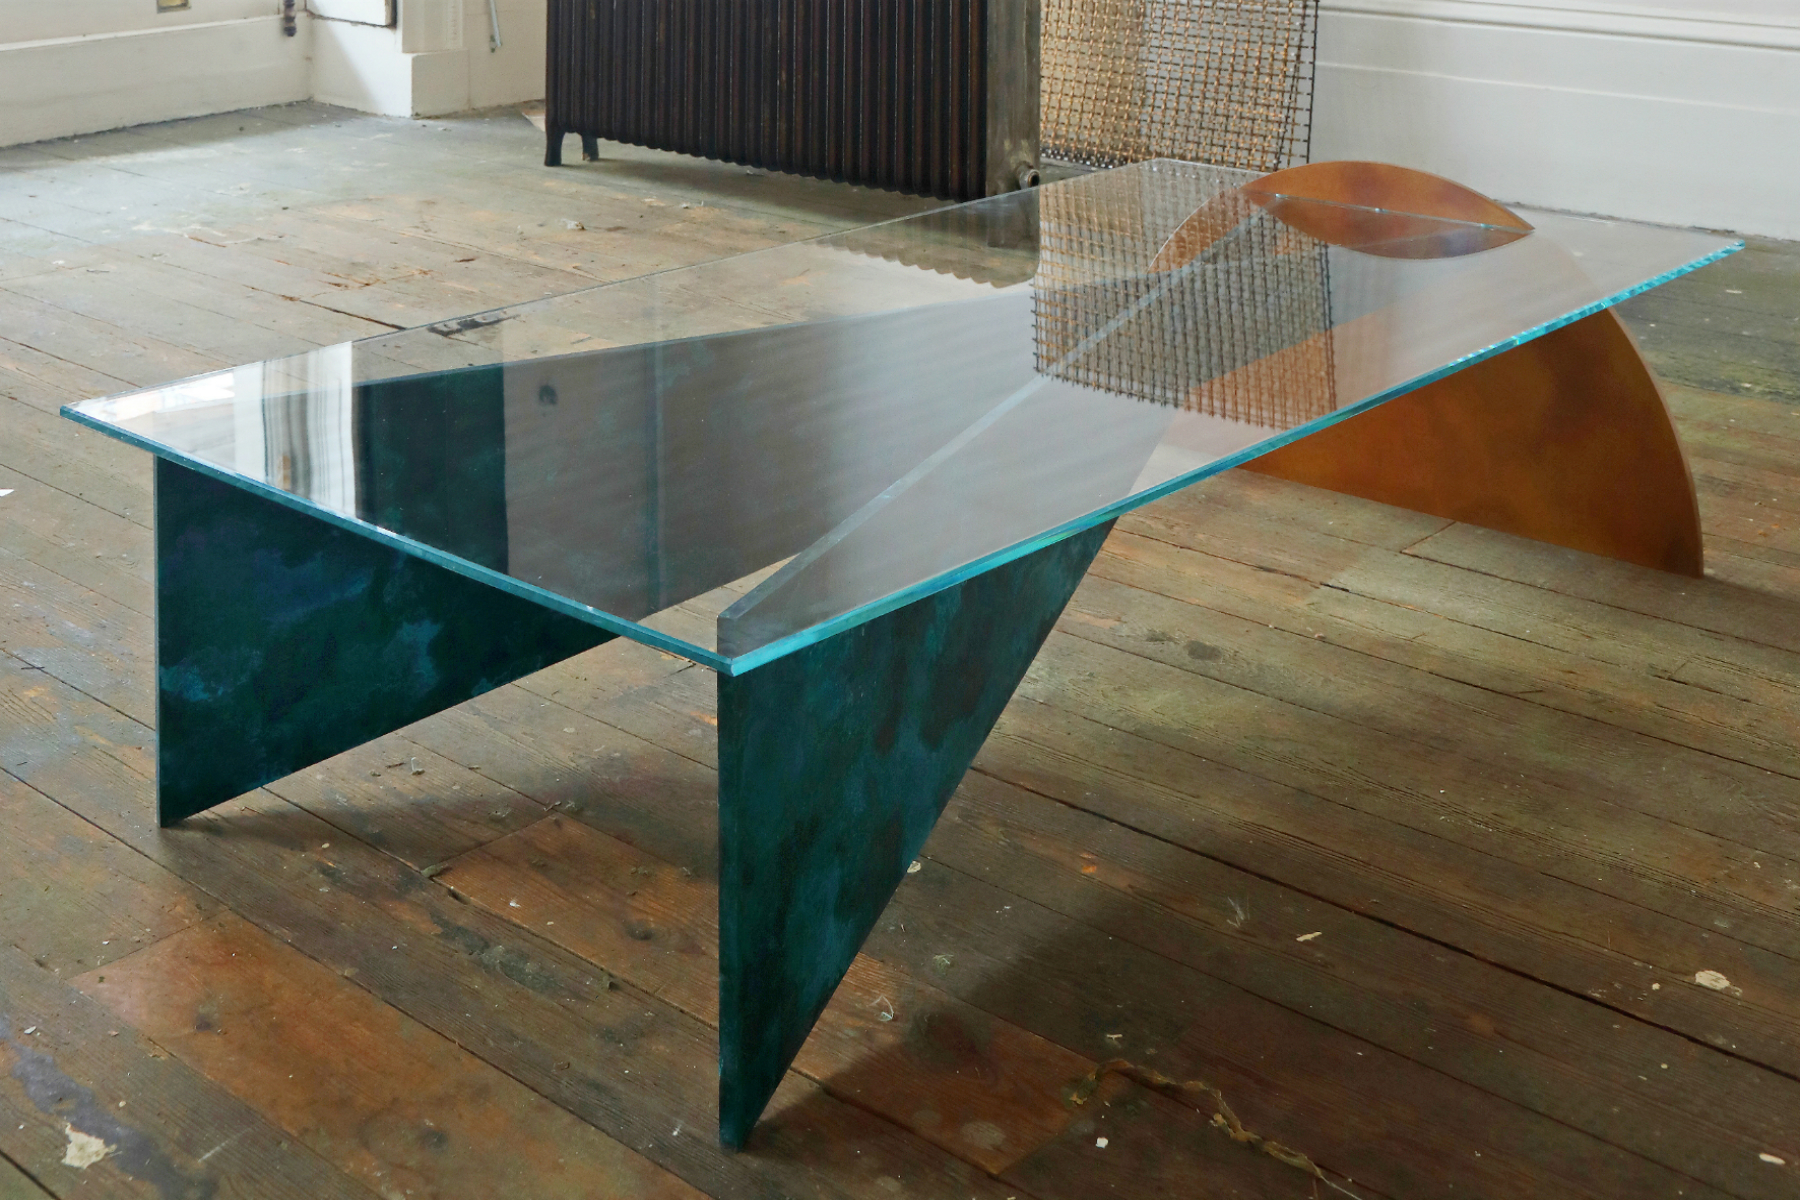 Thonis Table designed by Studioloop. Geometric shapes slot together to form the table structure, with low iron glass top. Patinated finishes